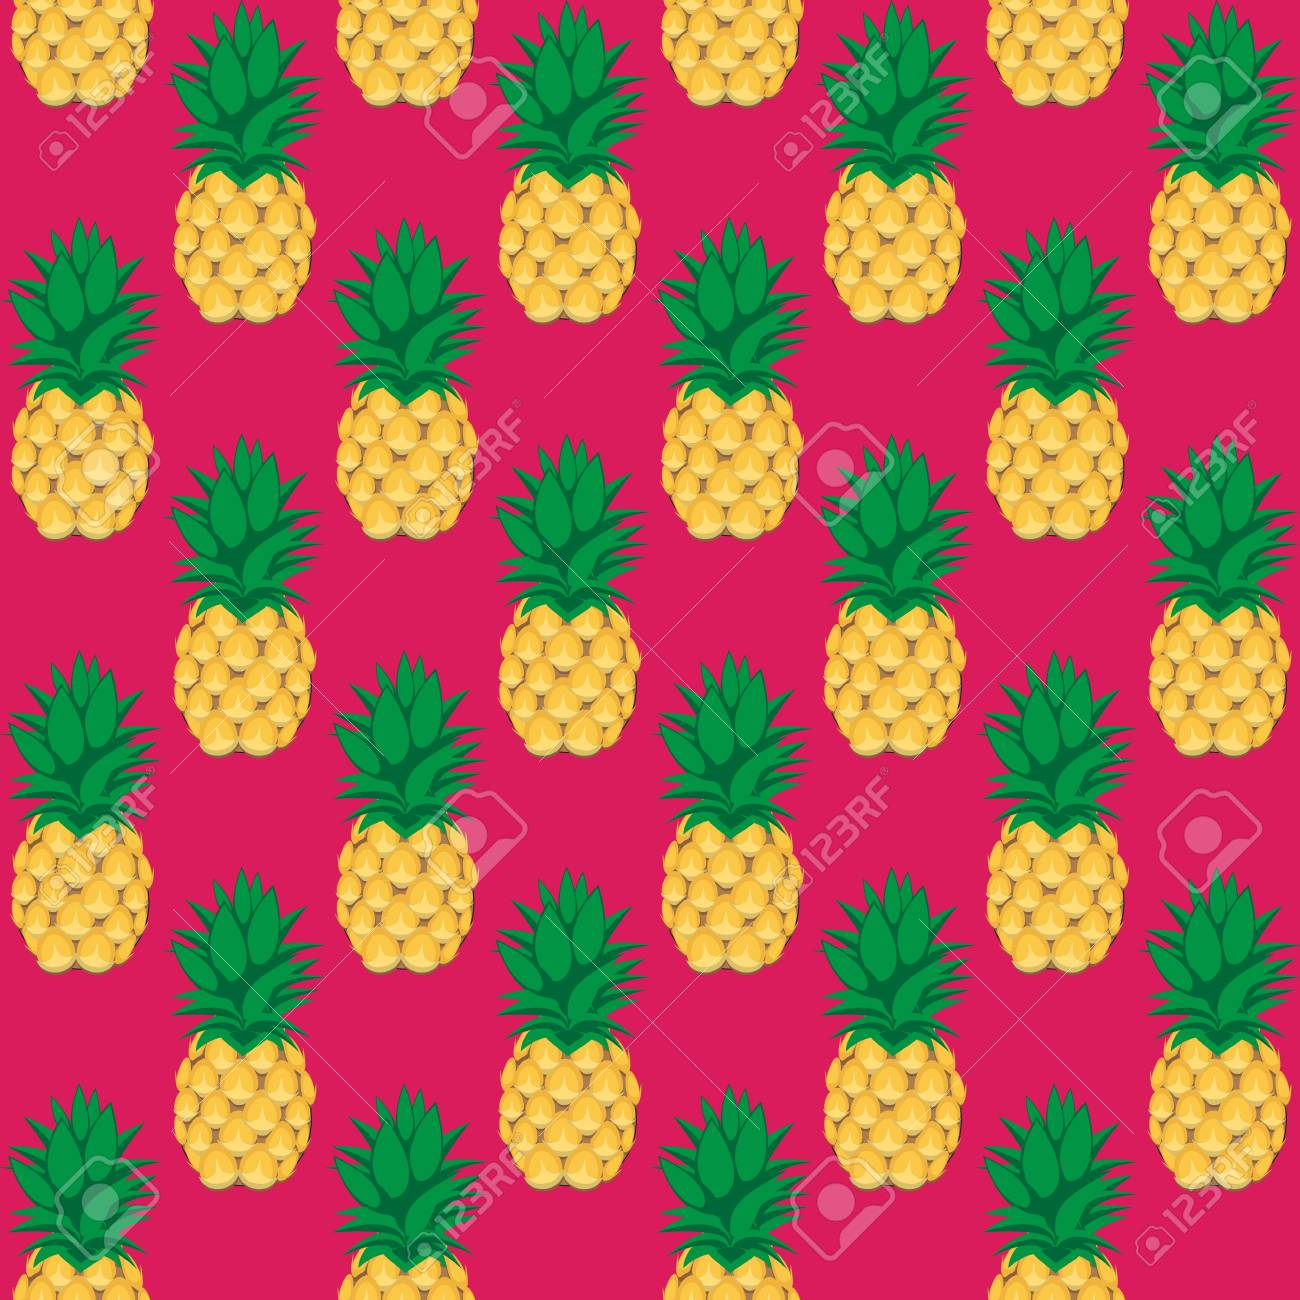 91991221 pineapple fruit contour abstract seamless pattern on pink background for wallpaper pattern web blog